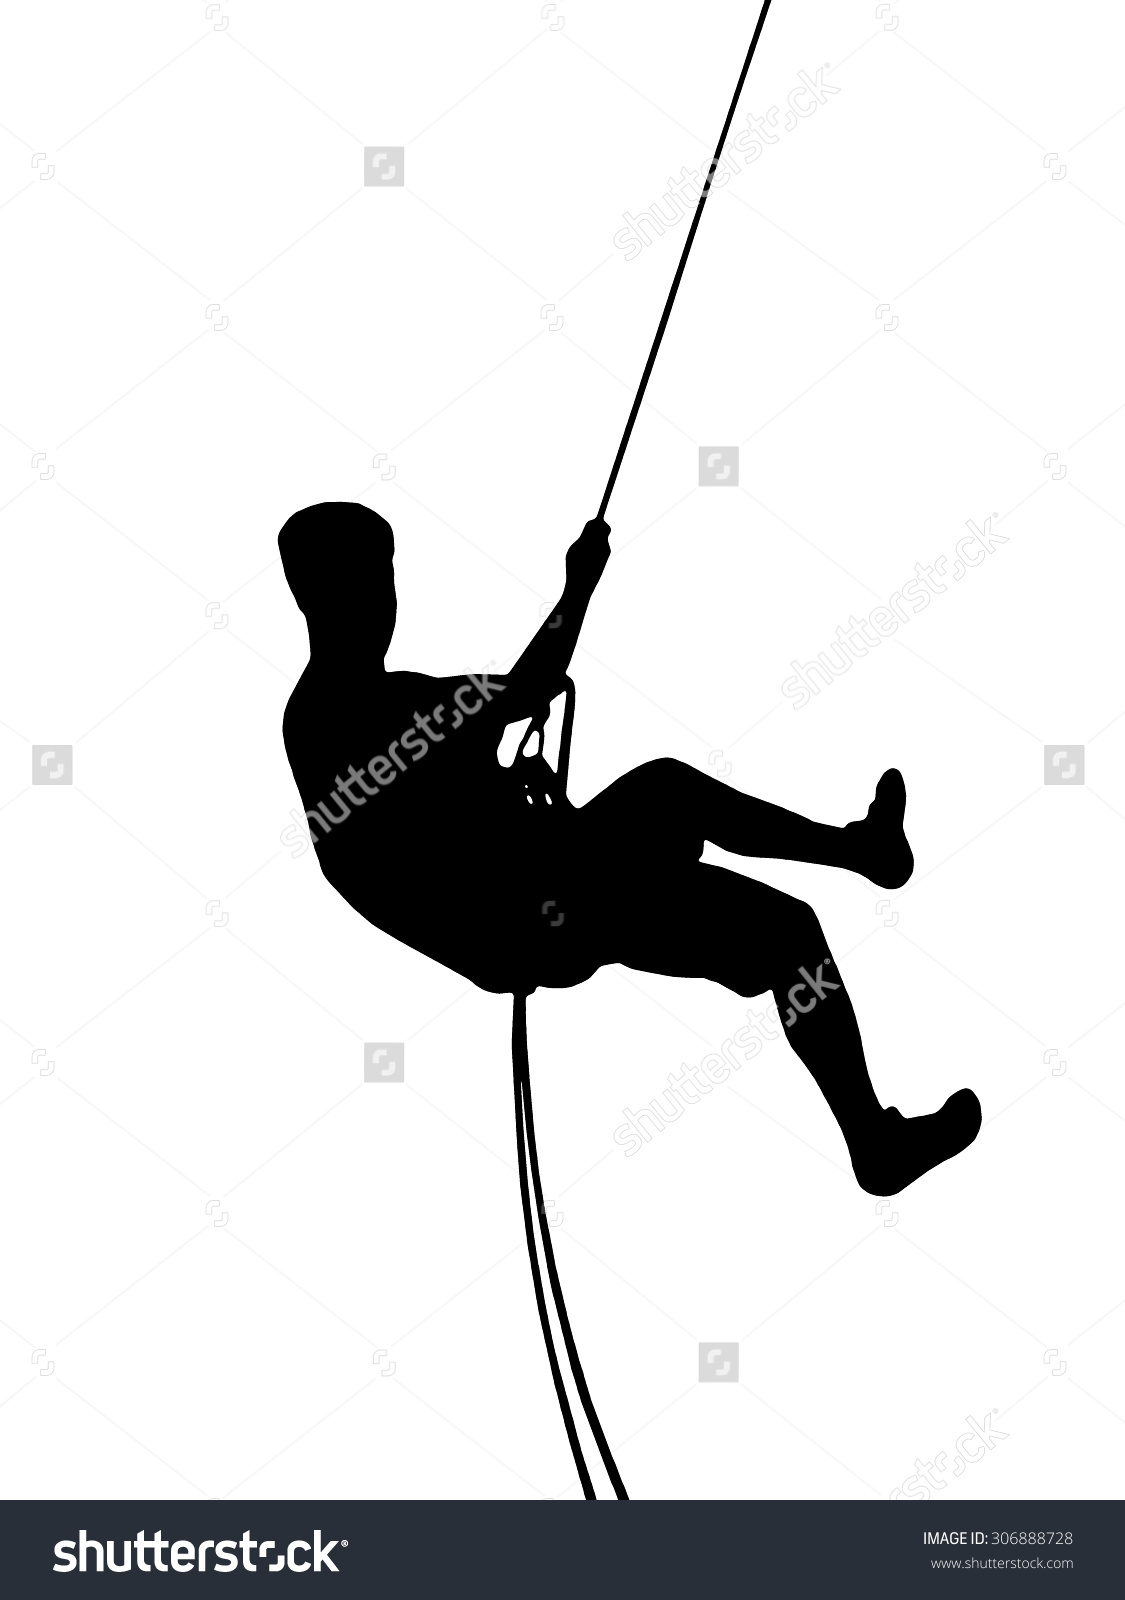 Climber Silhouette Illustration Young Man Abseiling Stock.